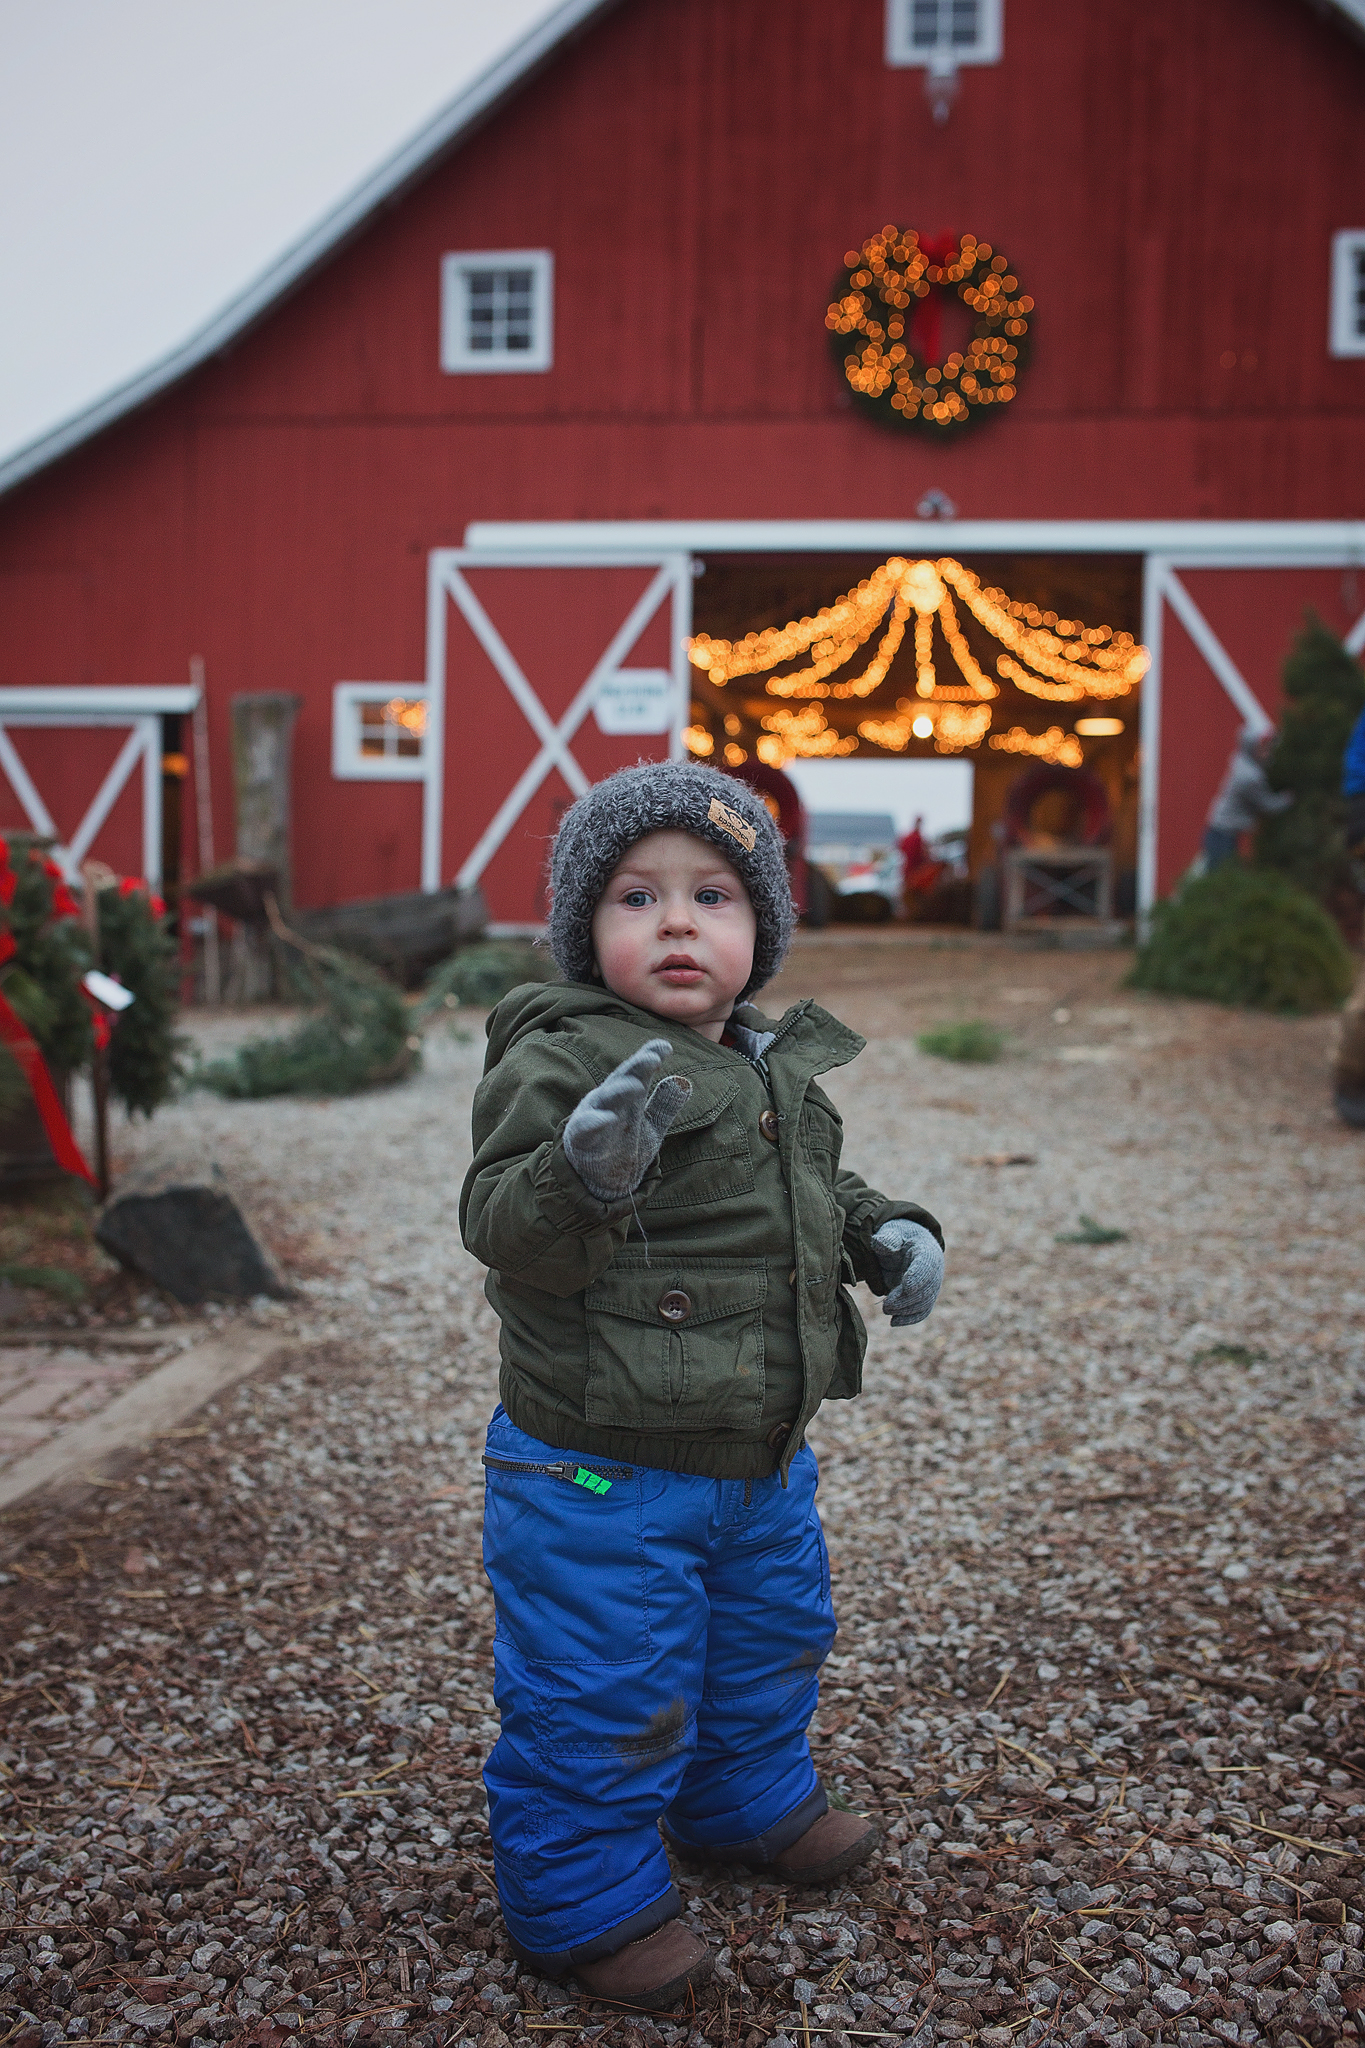 Grayson bundled up at barn